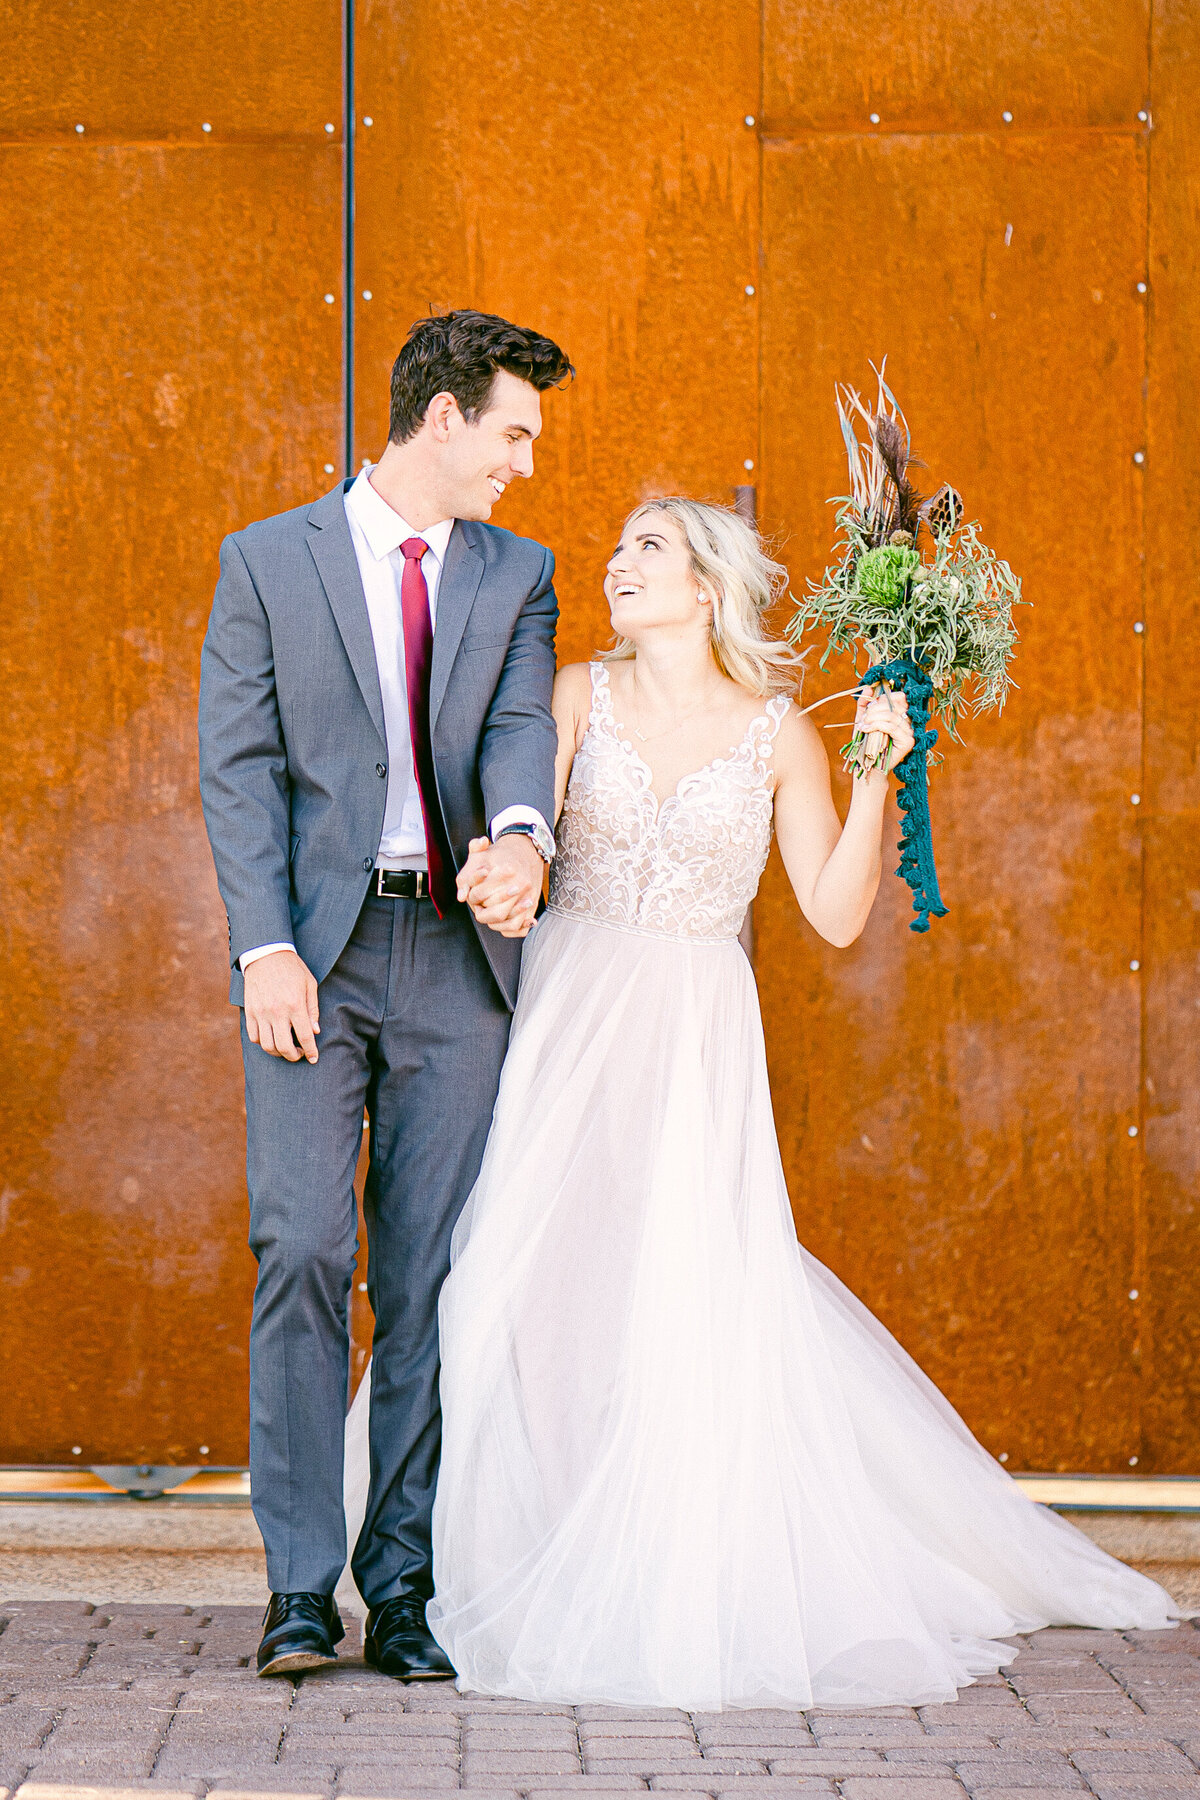 Phoenix Wedding Photographer - Paseo Wedding In Summer 2020 - Atlas Rose Photography AZ01